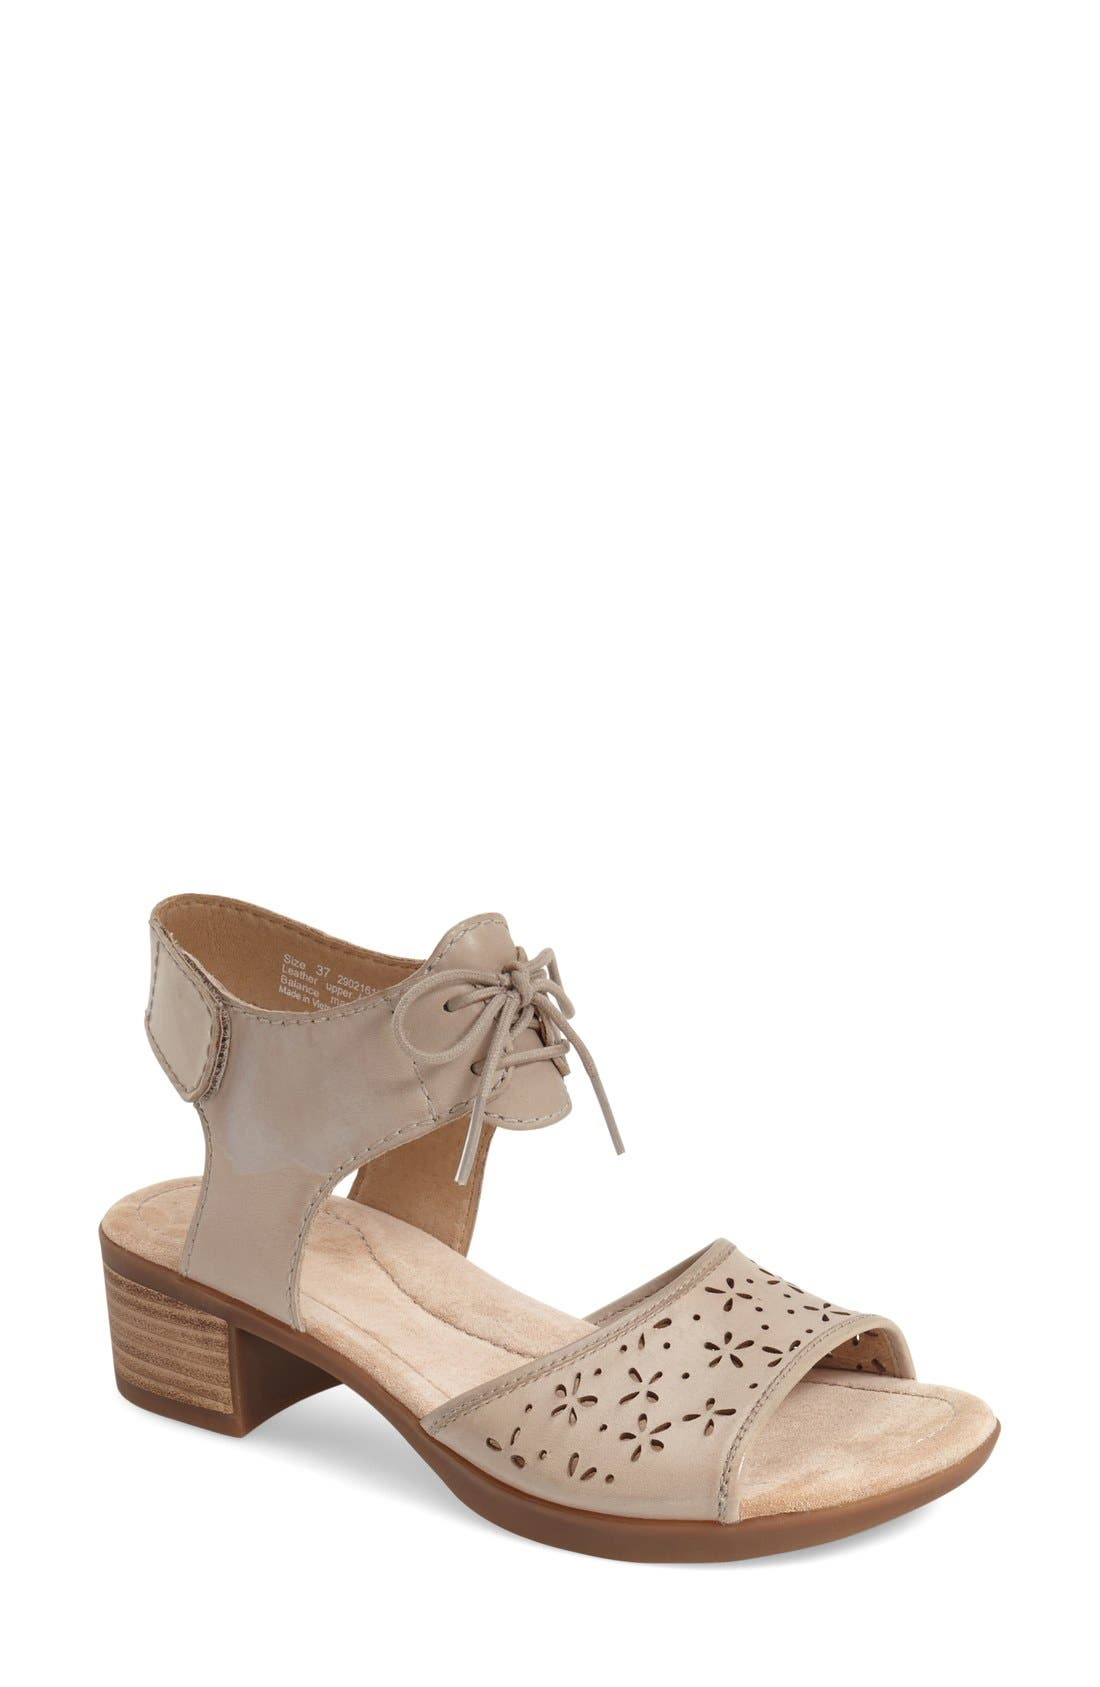 'Liz' Lace-Up Block Heel Sandal,                         Main,                         color, 270